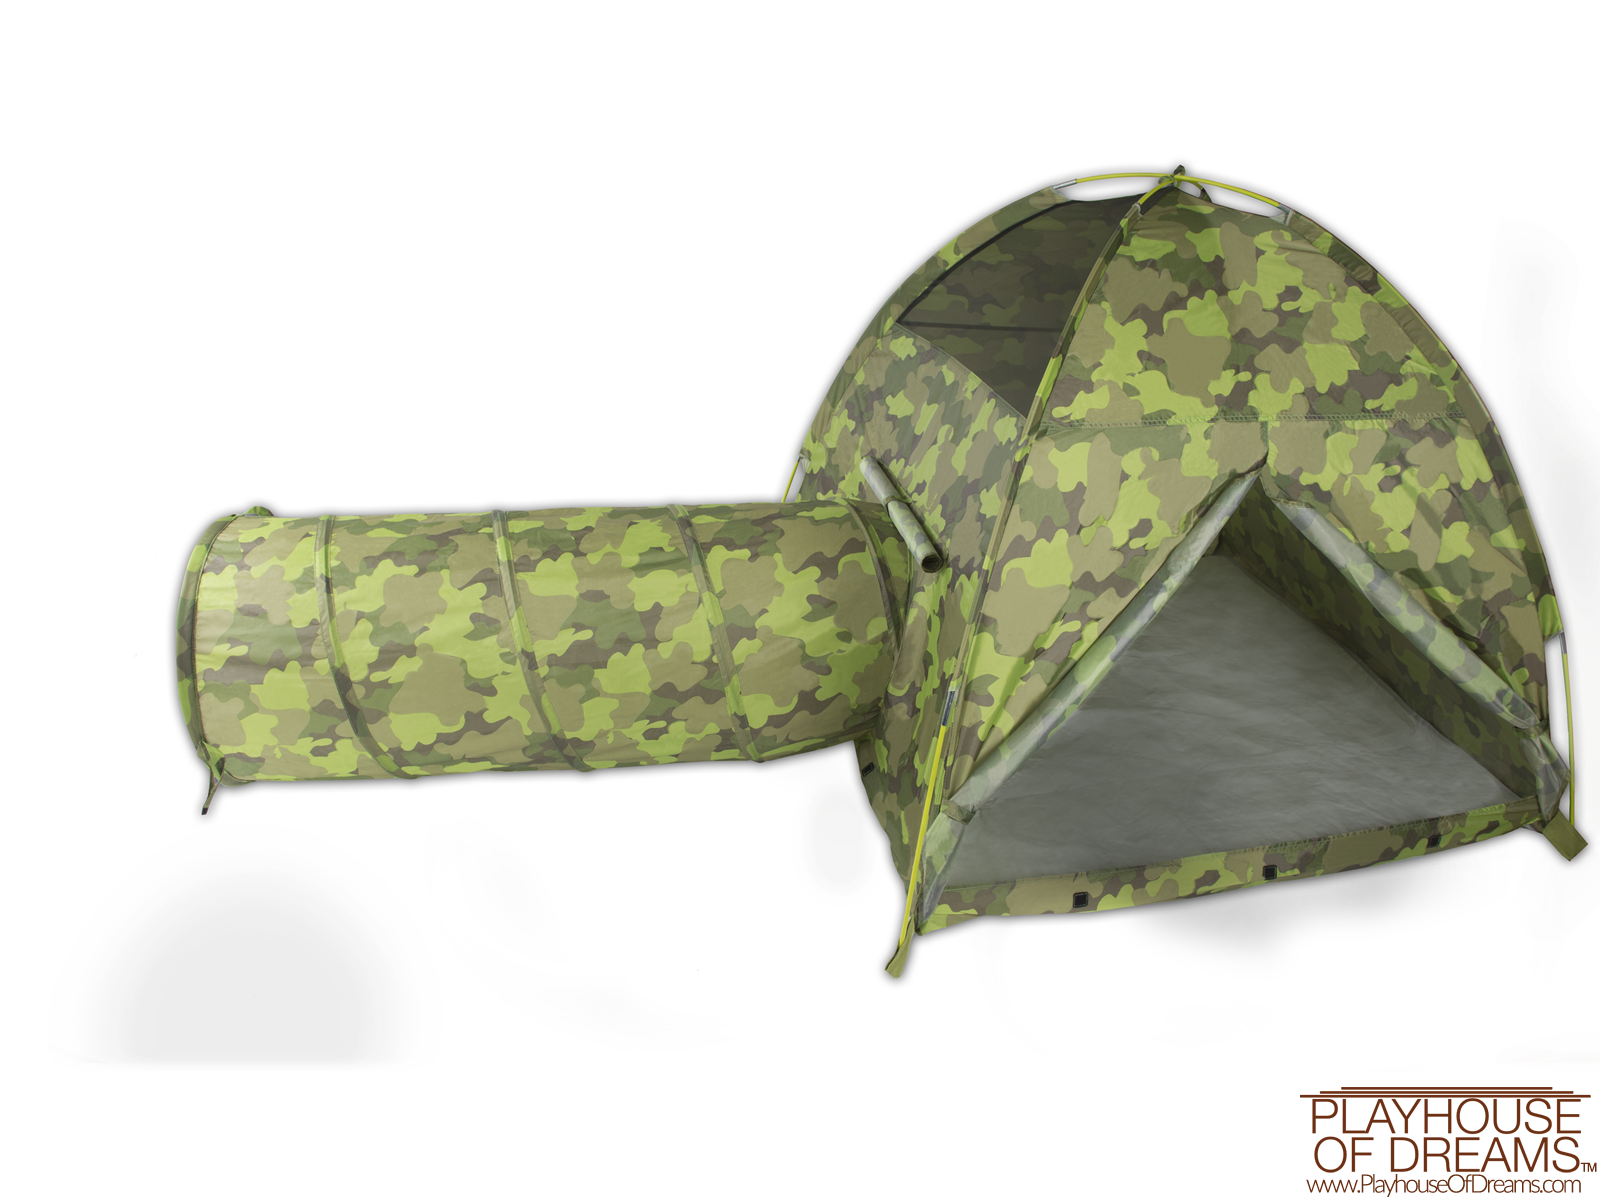 Command HQ Tent & Tunnel Combo - Pacific Play Tent - Playhouse of Dreams  - 1